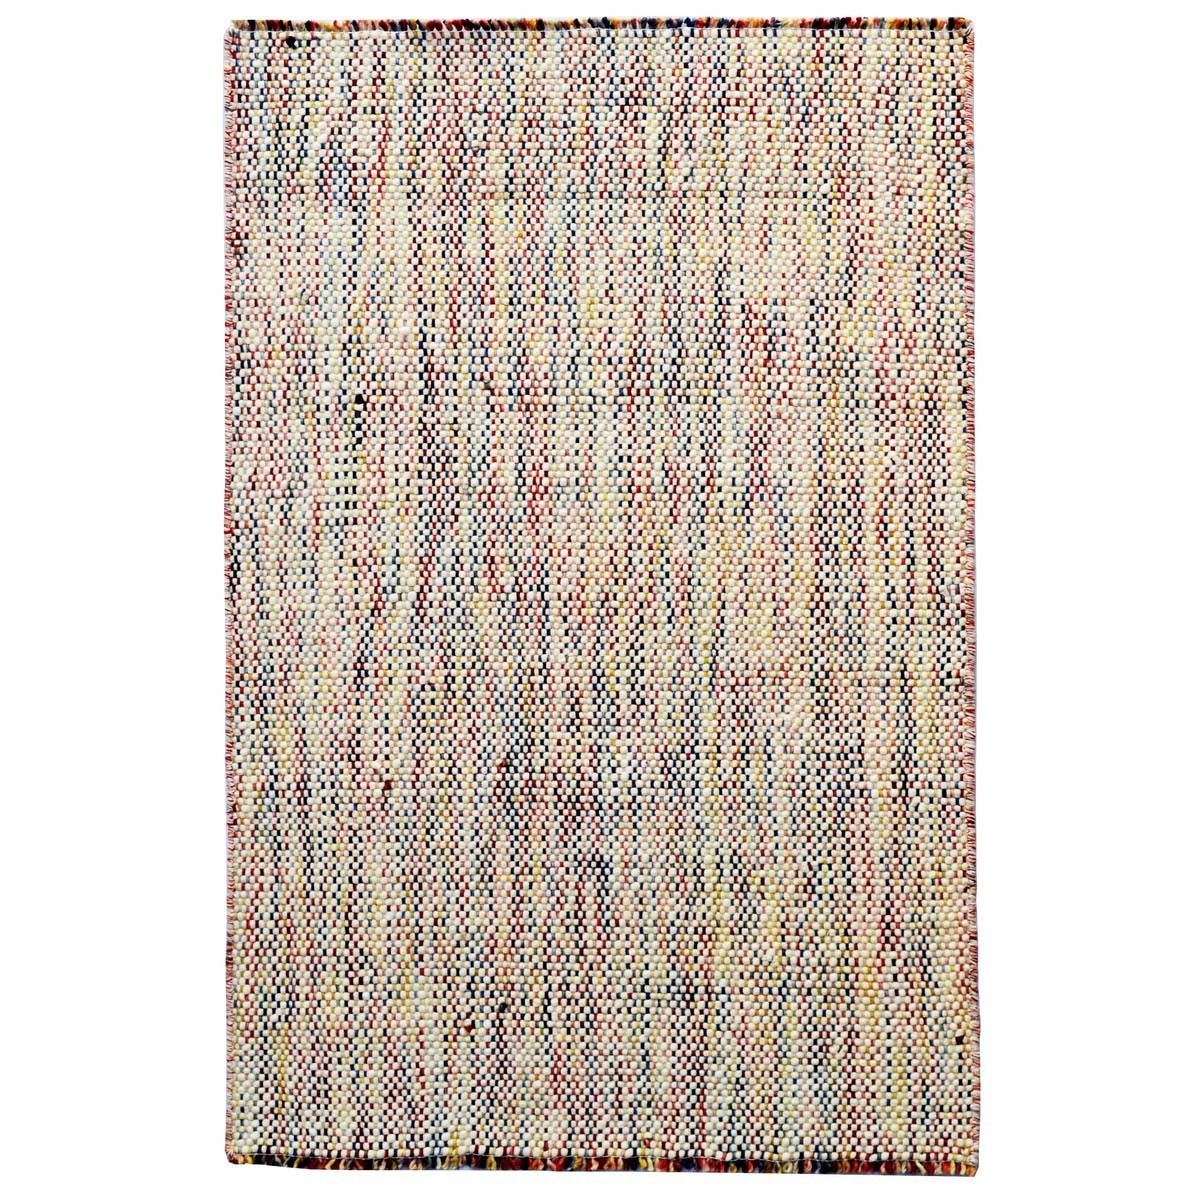 Checkers Handwoven Wool Rug, 150x180cm